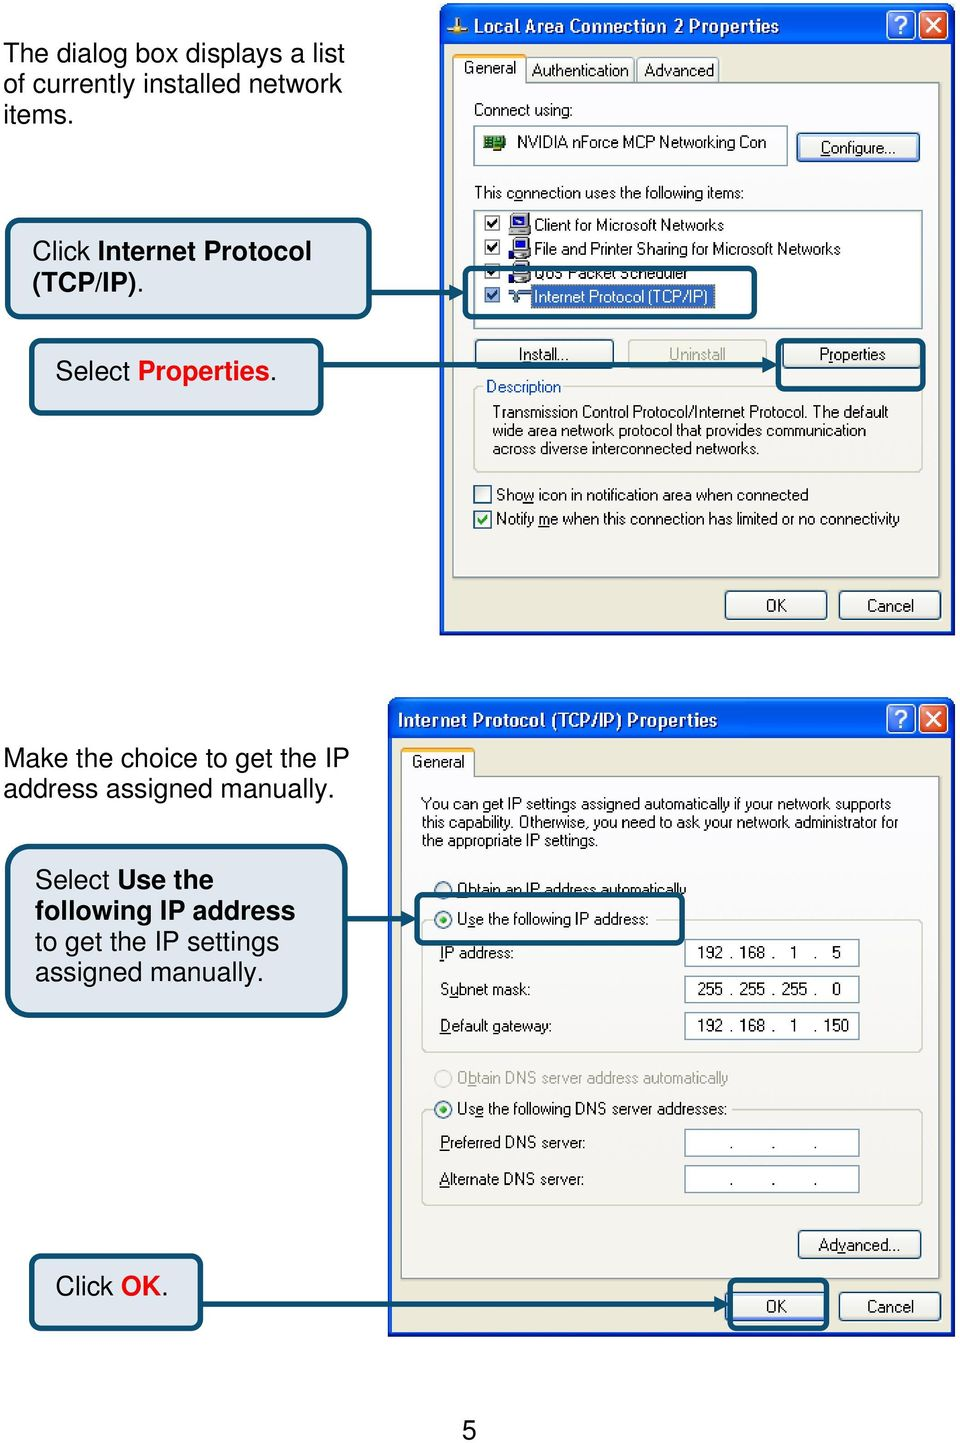 Make the choice to get the IP address assigned manually.